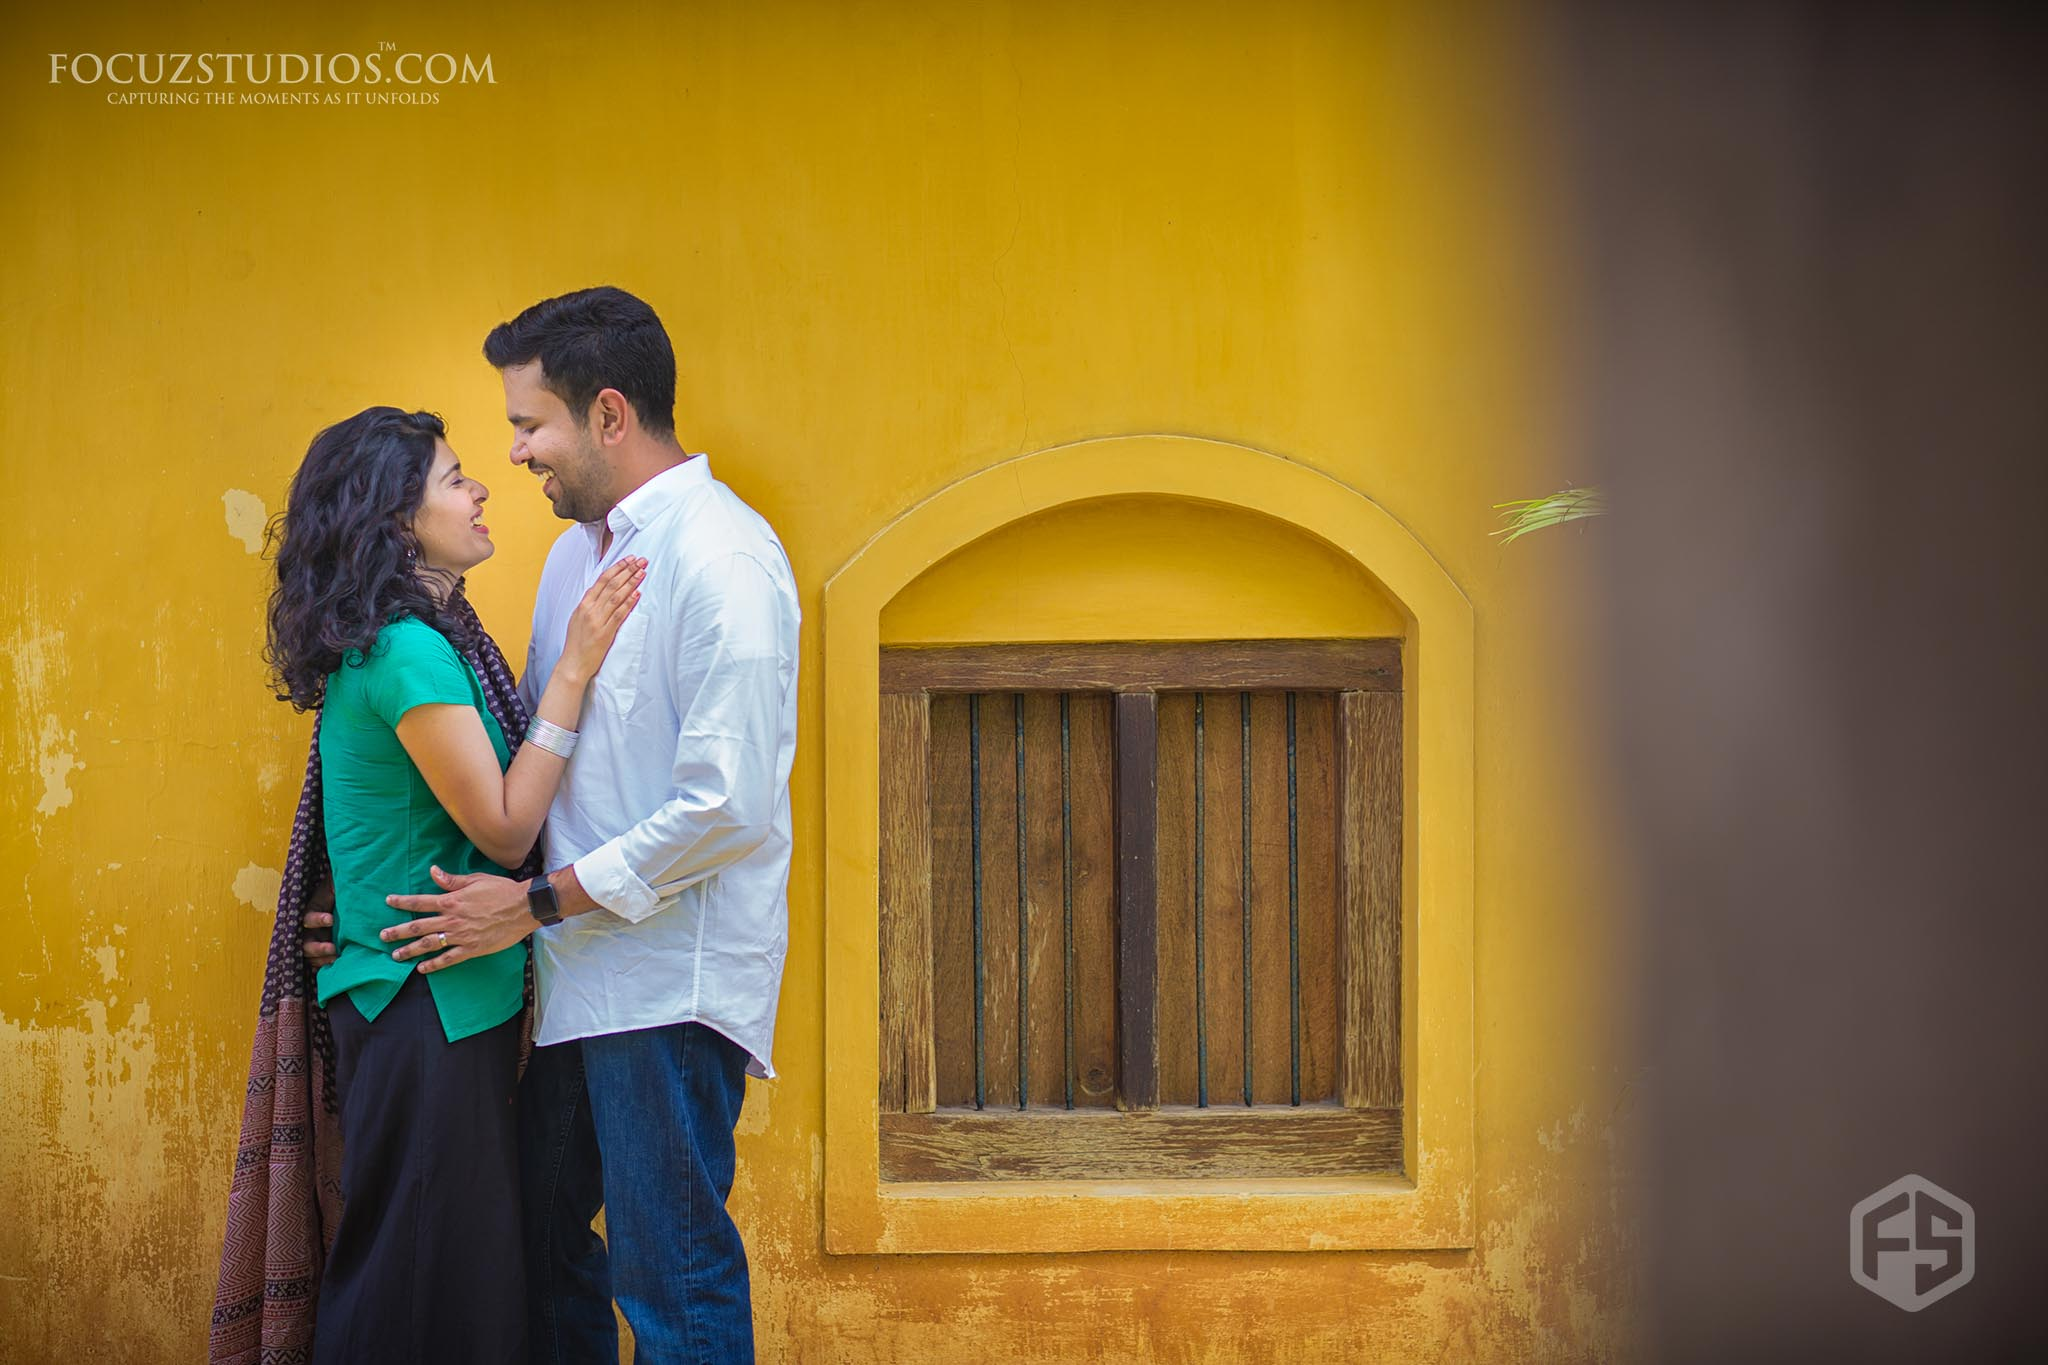 pre-wedding-photoshooting-focuz-studios5